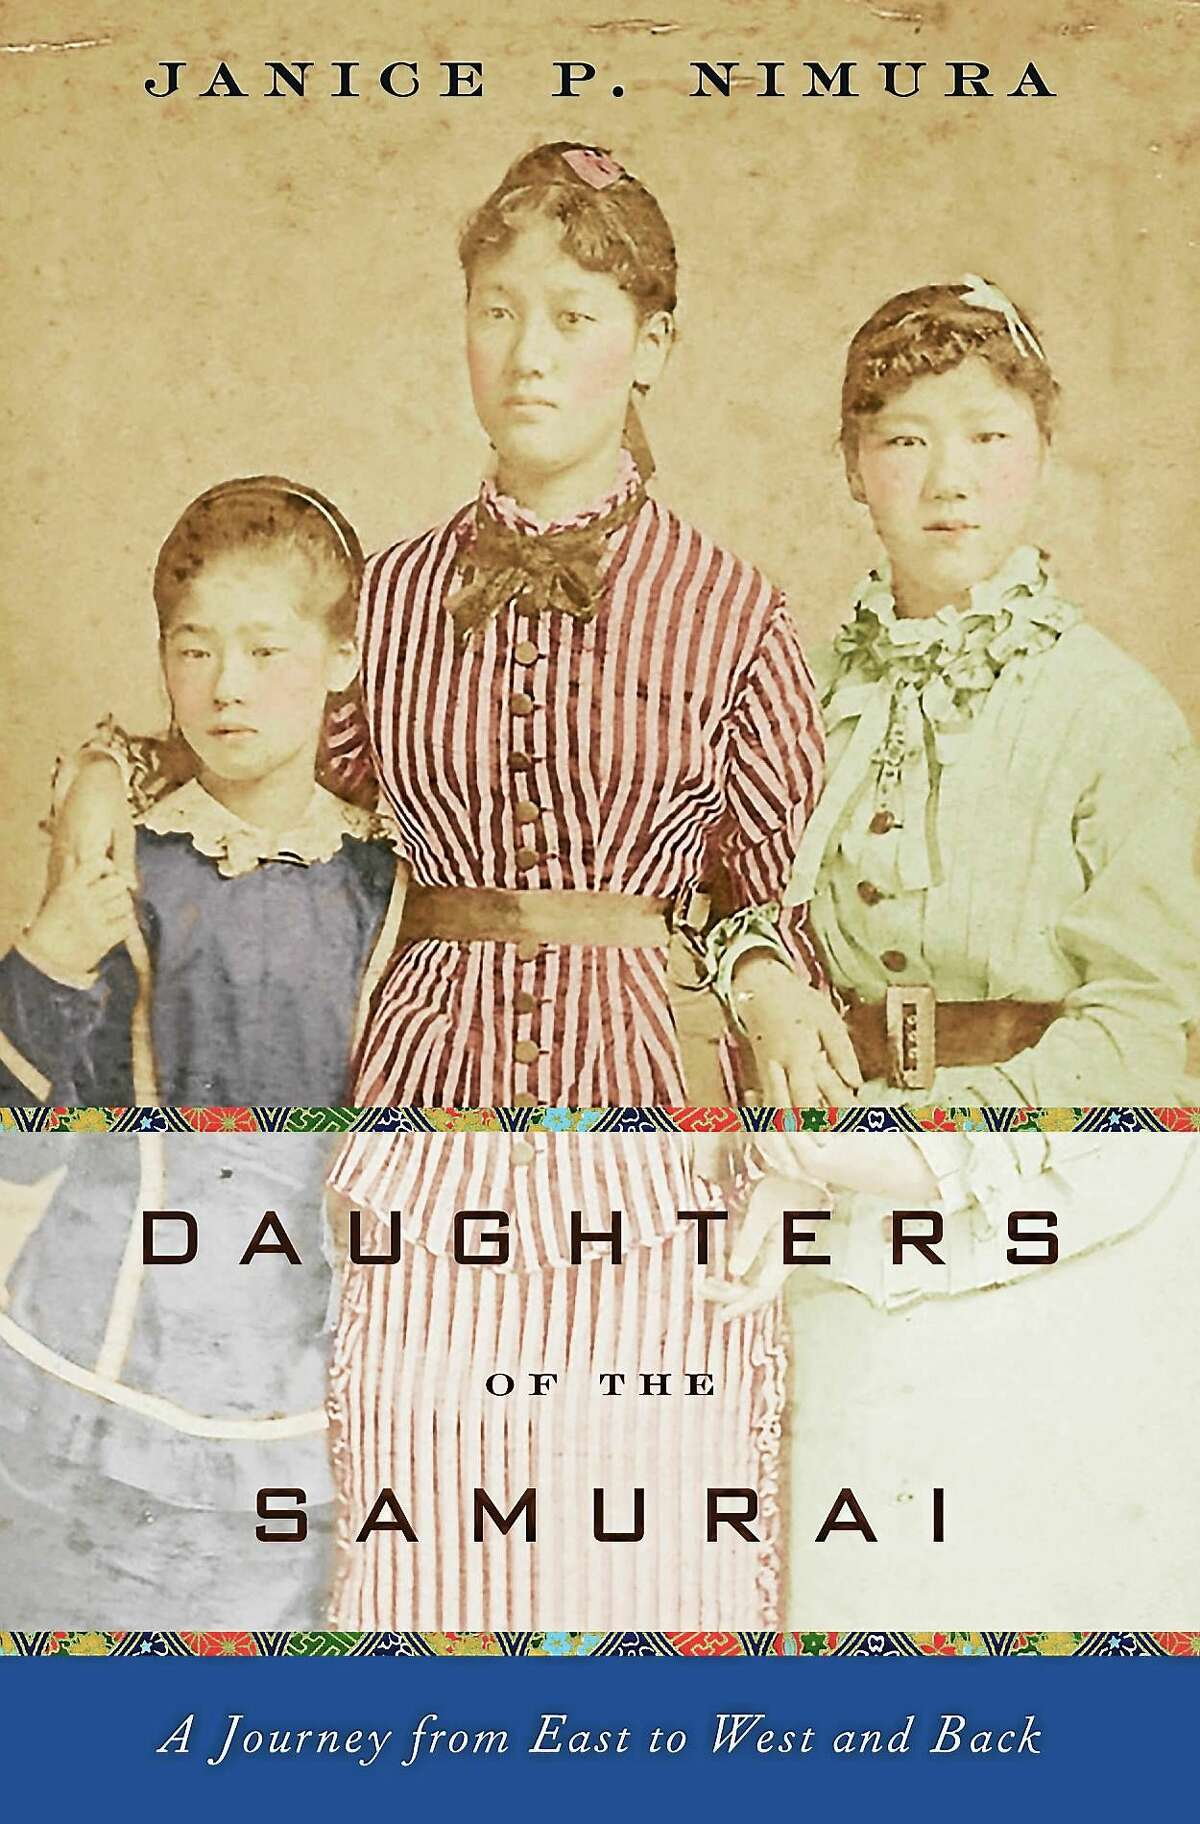 """The cover of """"Daughters of the Samurai"""" by Janice Nimura."""